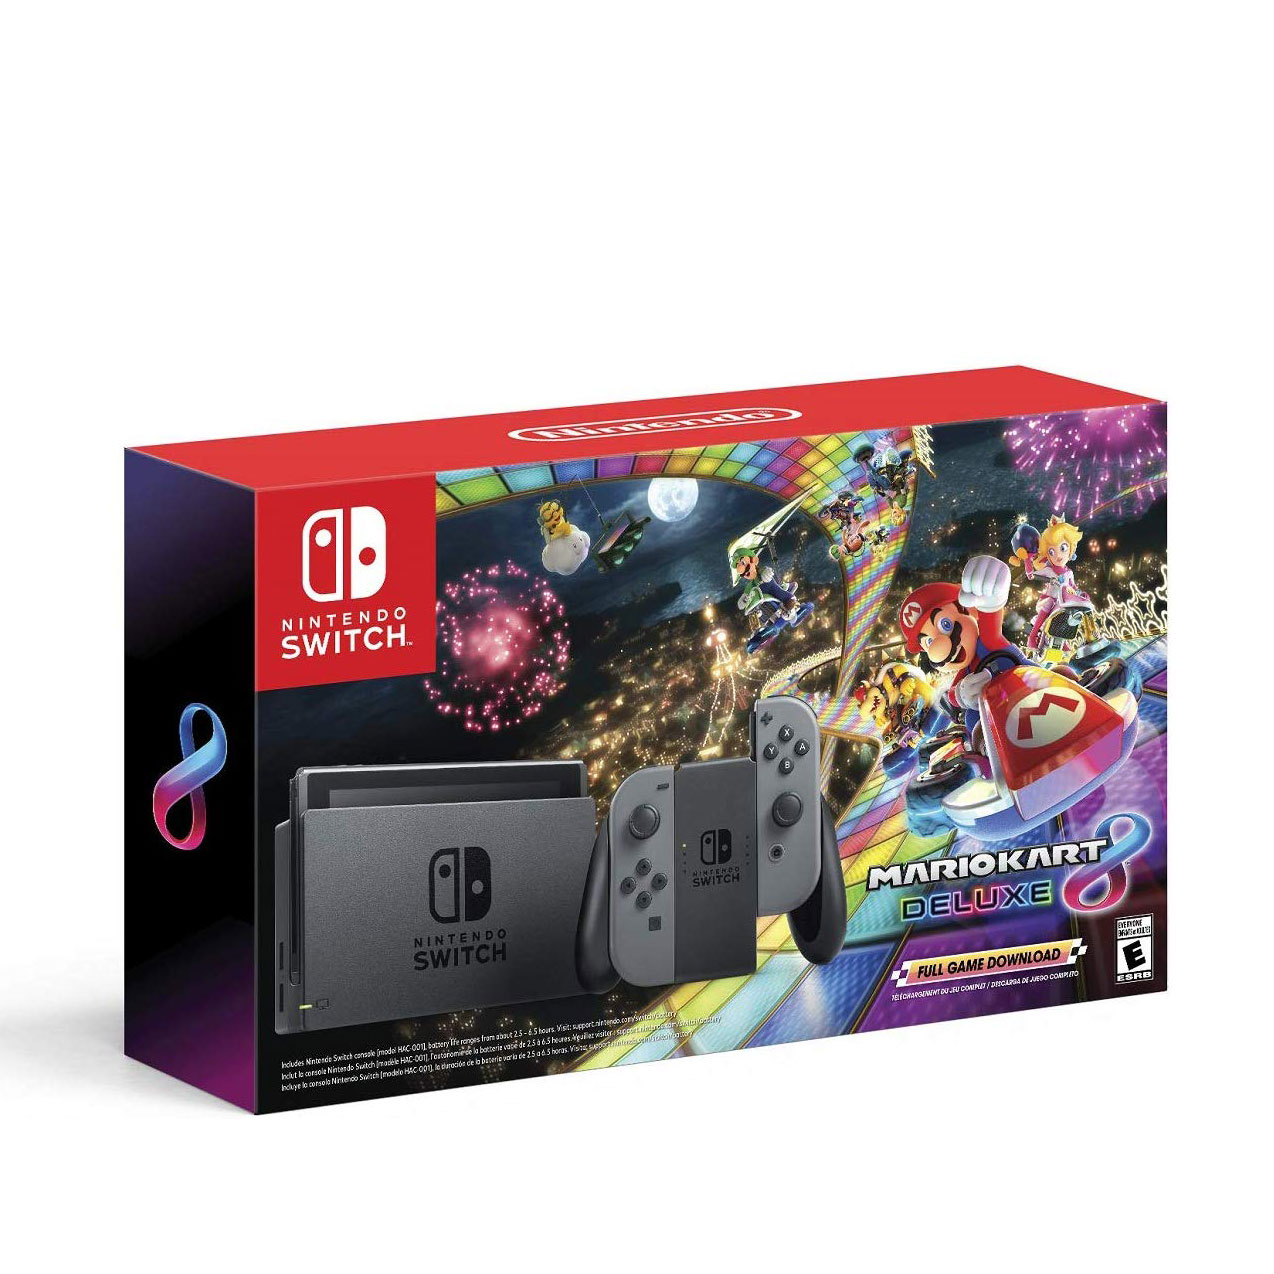 Nintendo Switch w/ Gray Joy-Con + Mario Kart 8 Deluxe